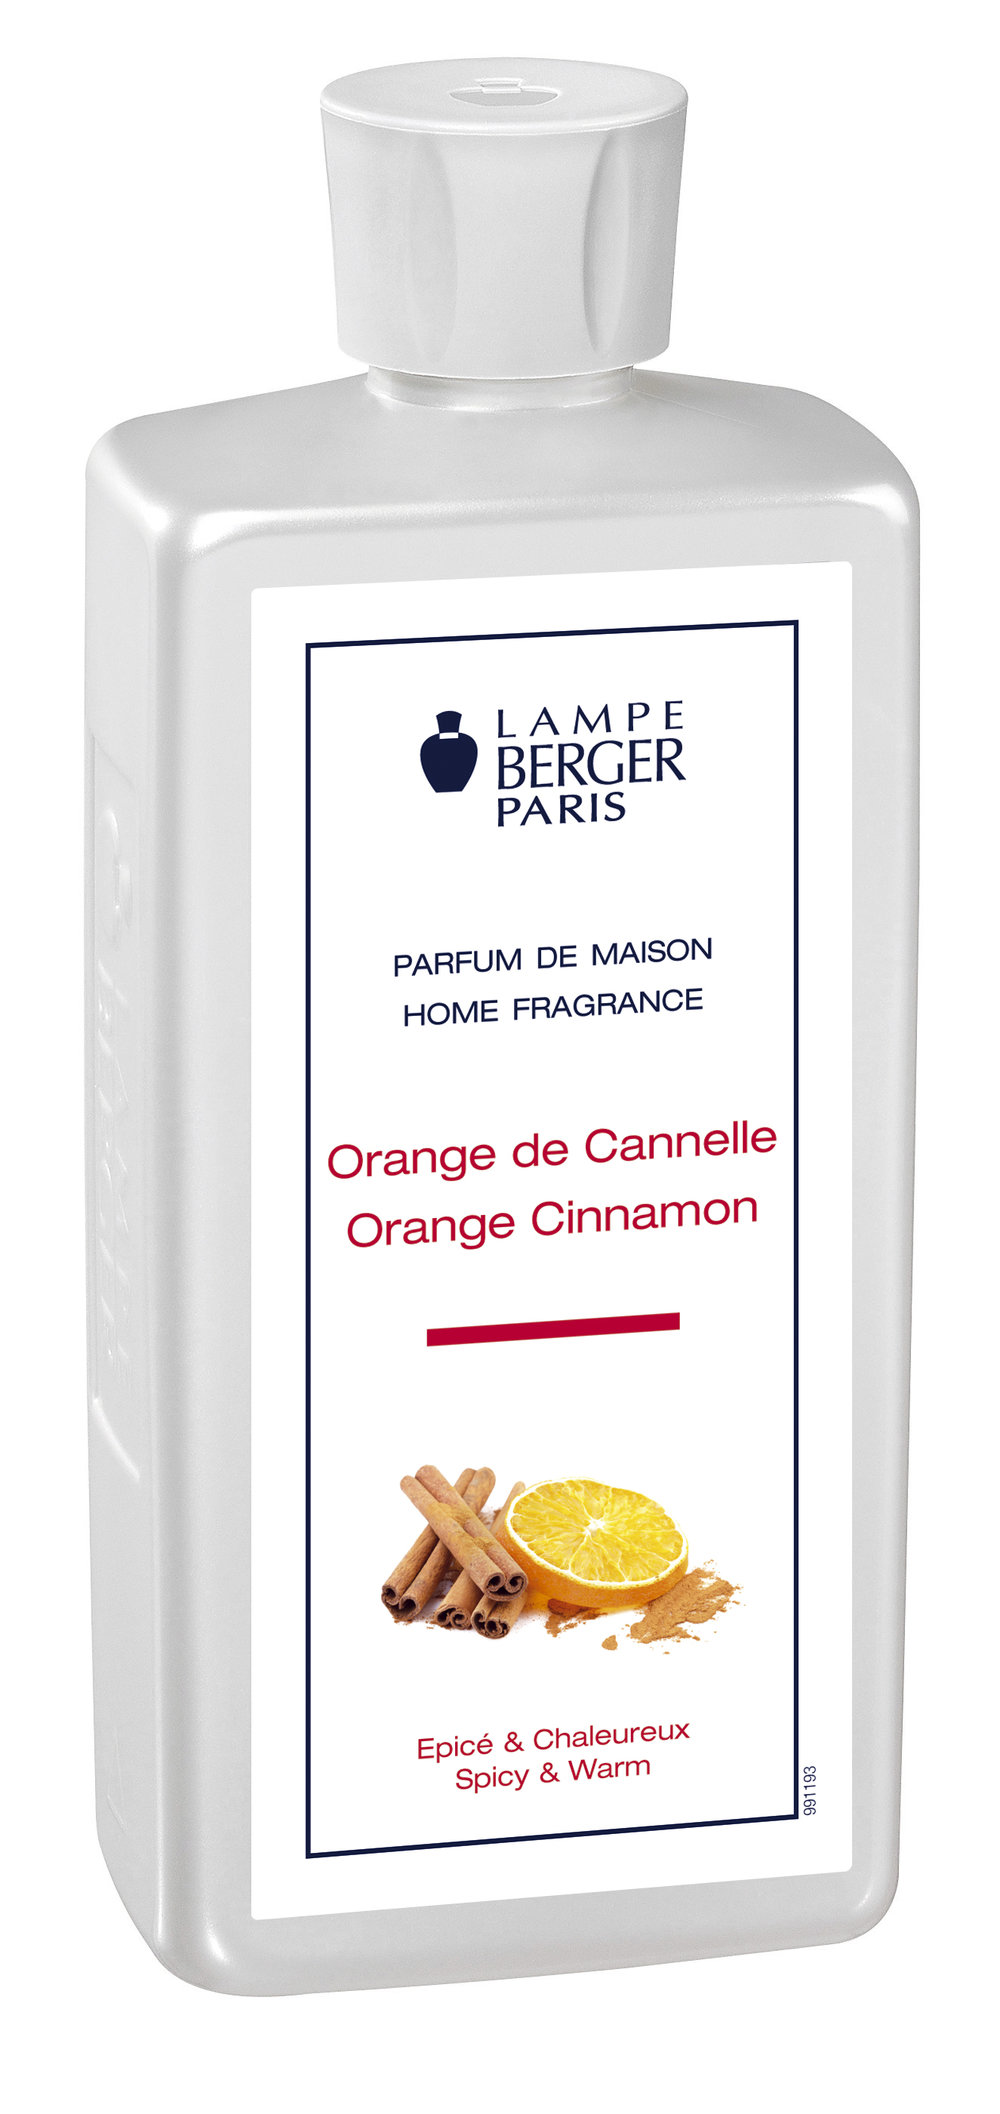 ORANGE DE CANNELLE 500ML.jpg